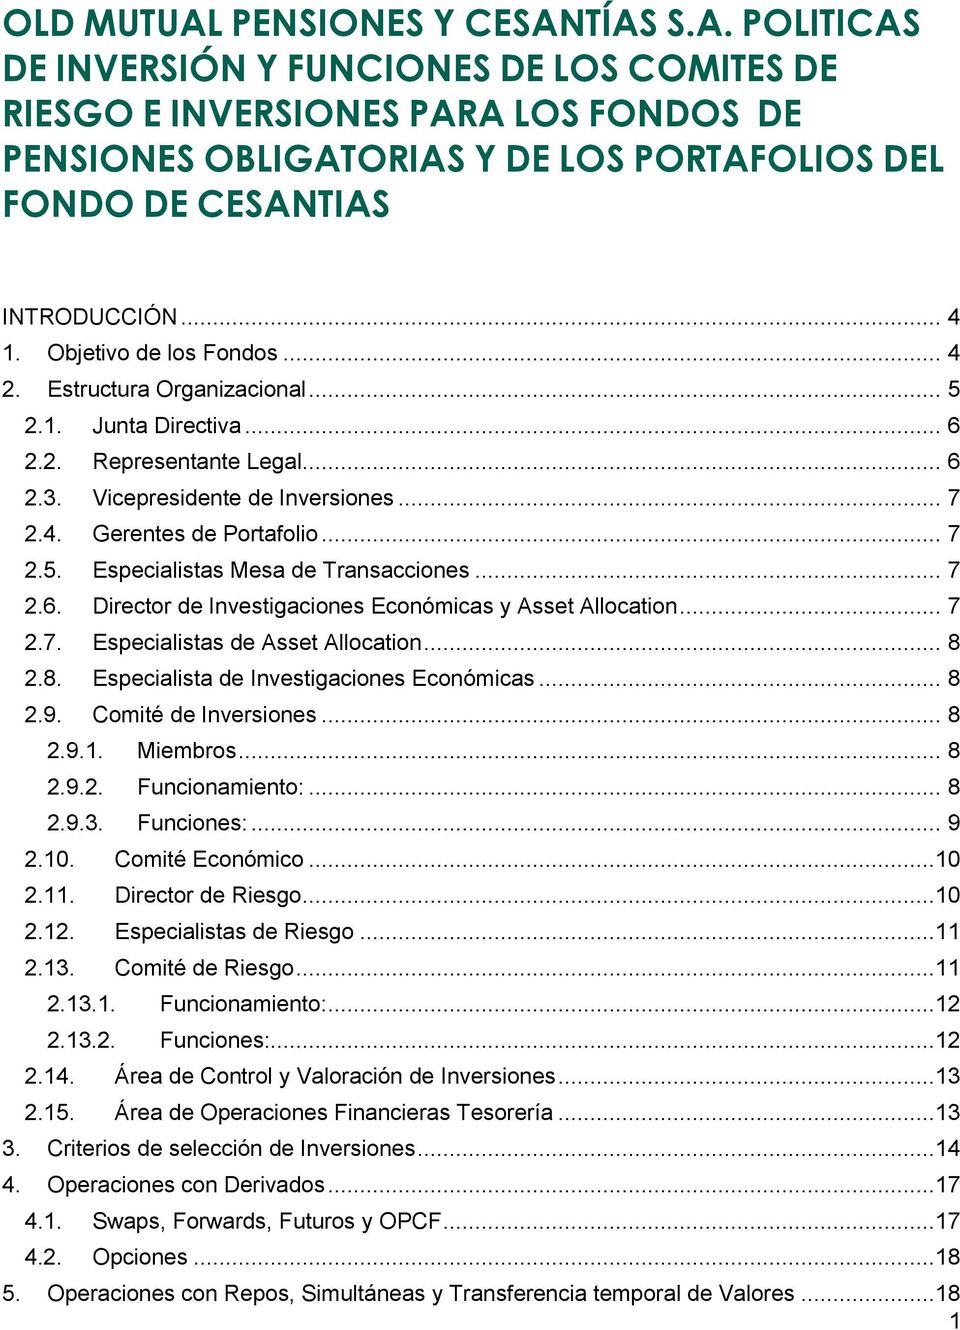 .. 7 2.6. Director de Investigaciones Económicas y Asset Allocation... 7 2.7. Especialistas de Asset Allocation... 8 2.8. Especialista de Investigaciones Económicas... 8 2.9. Comité de Inversiones.